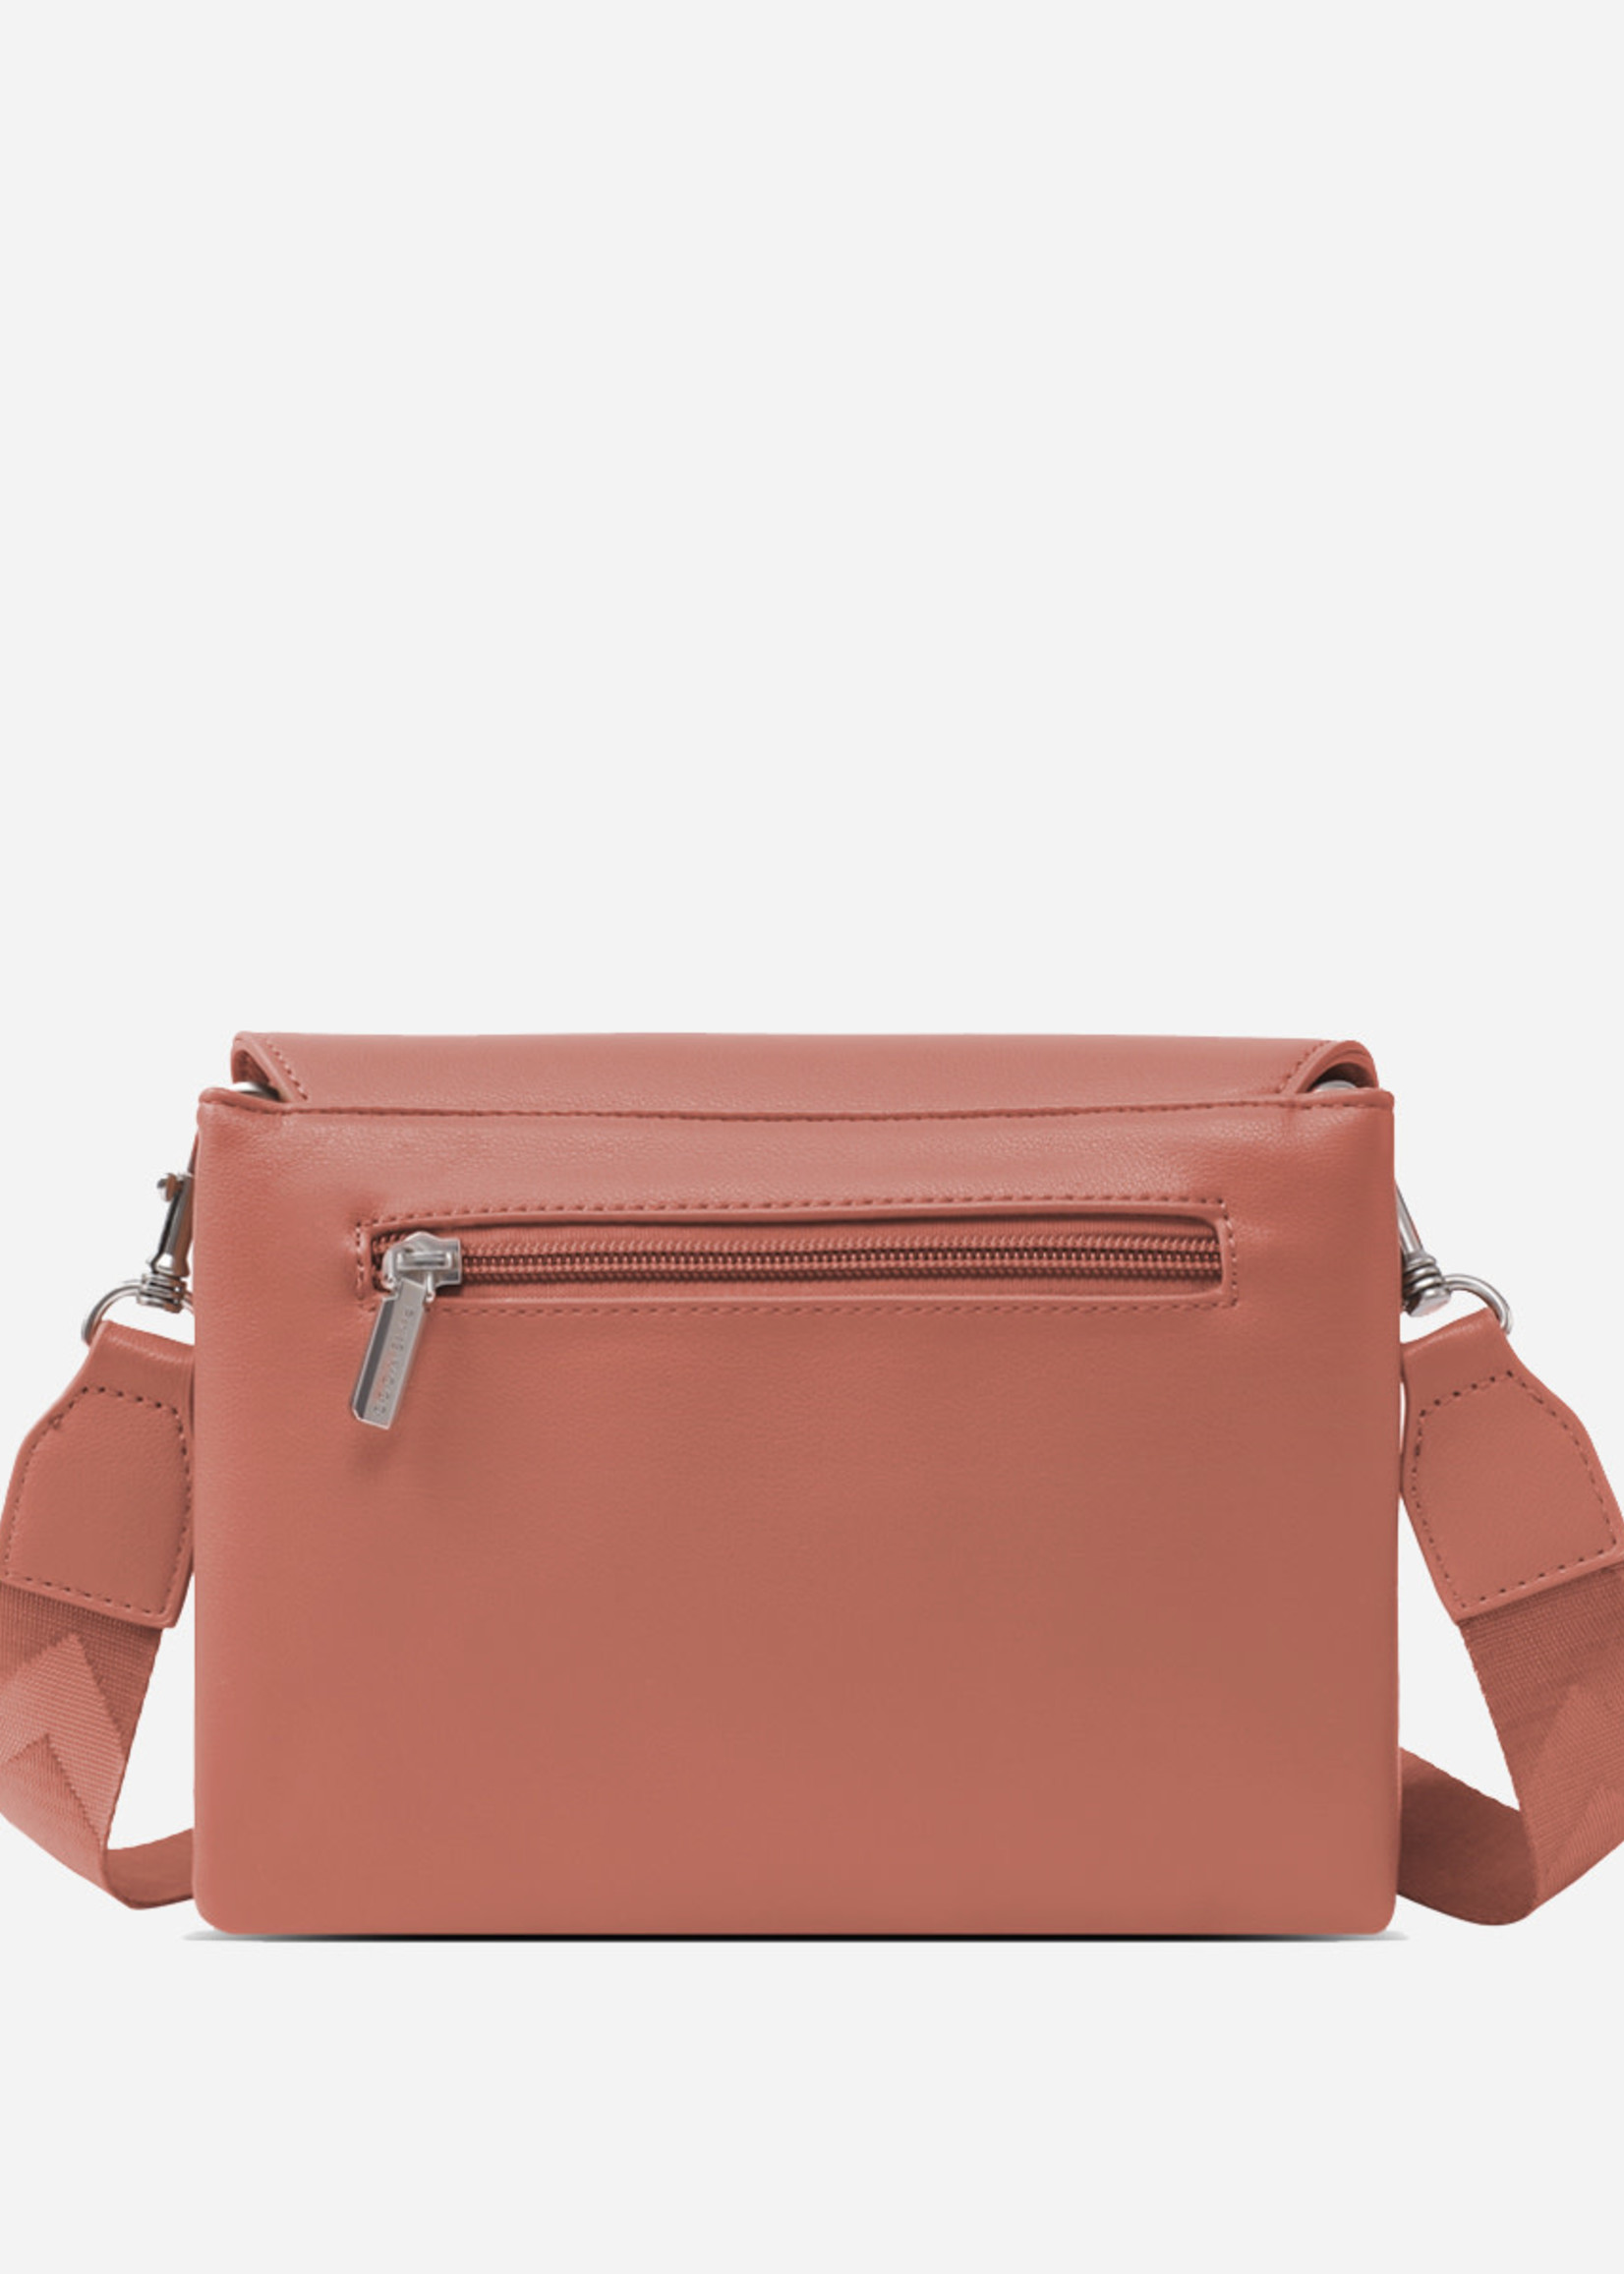 PIXIE MOOD Gianna Crossbody DESERT CLAY